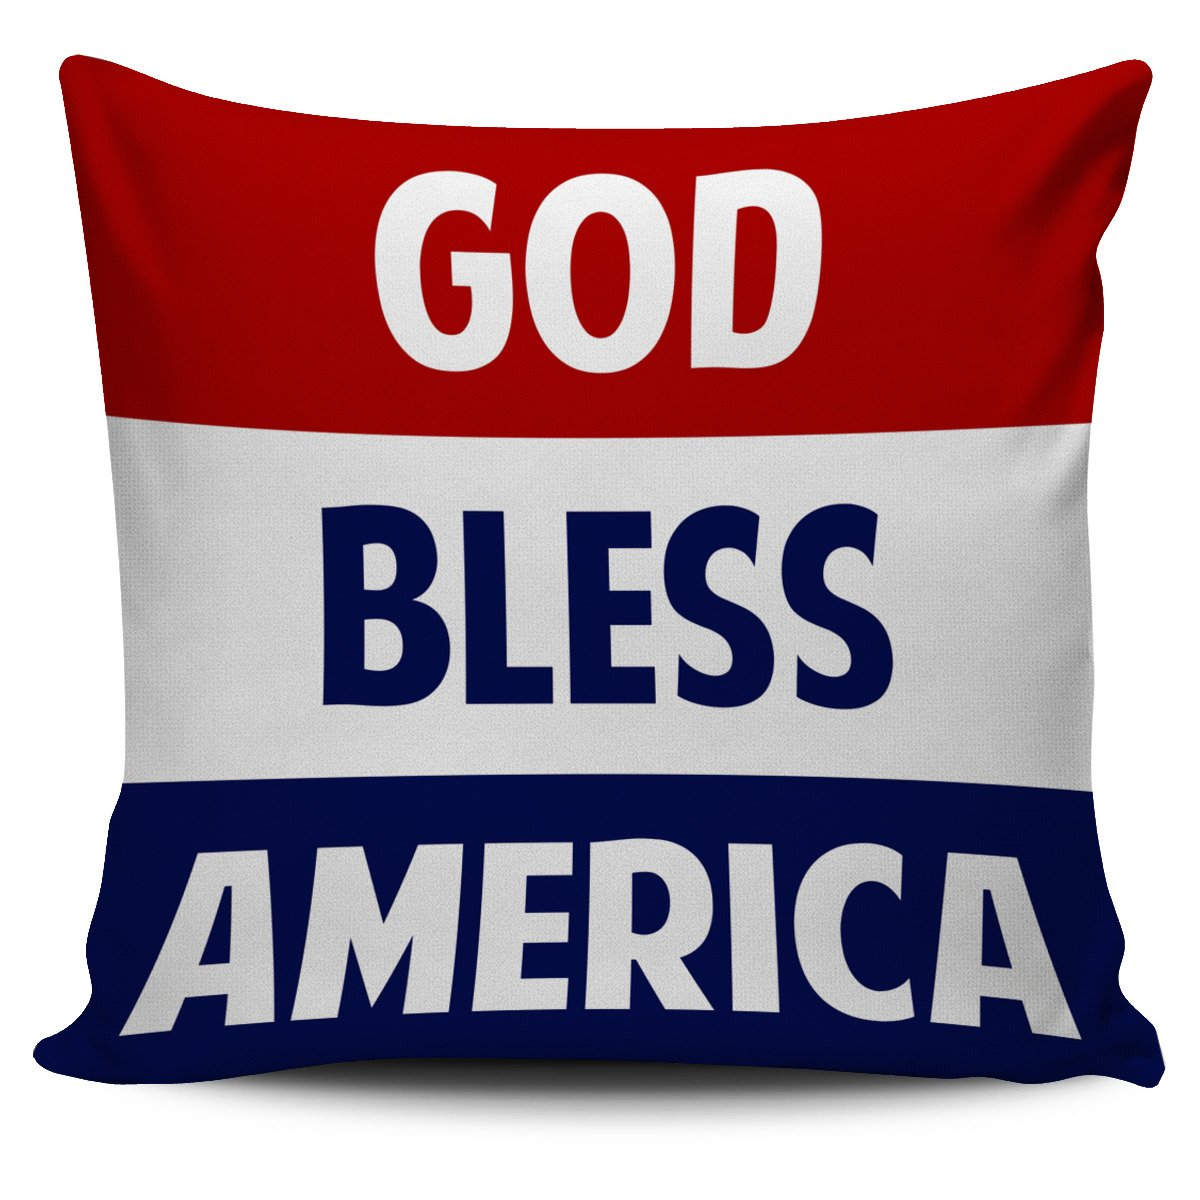 FREE God Bless America Pillow Case